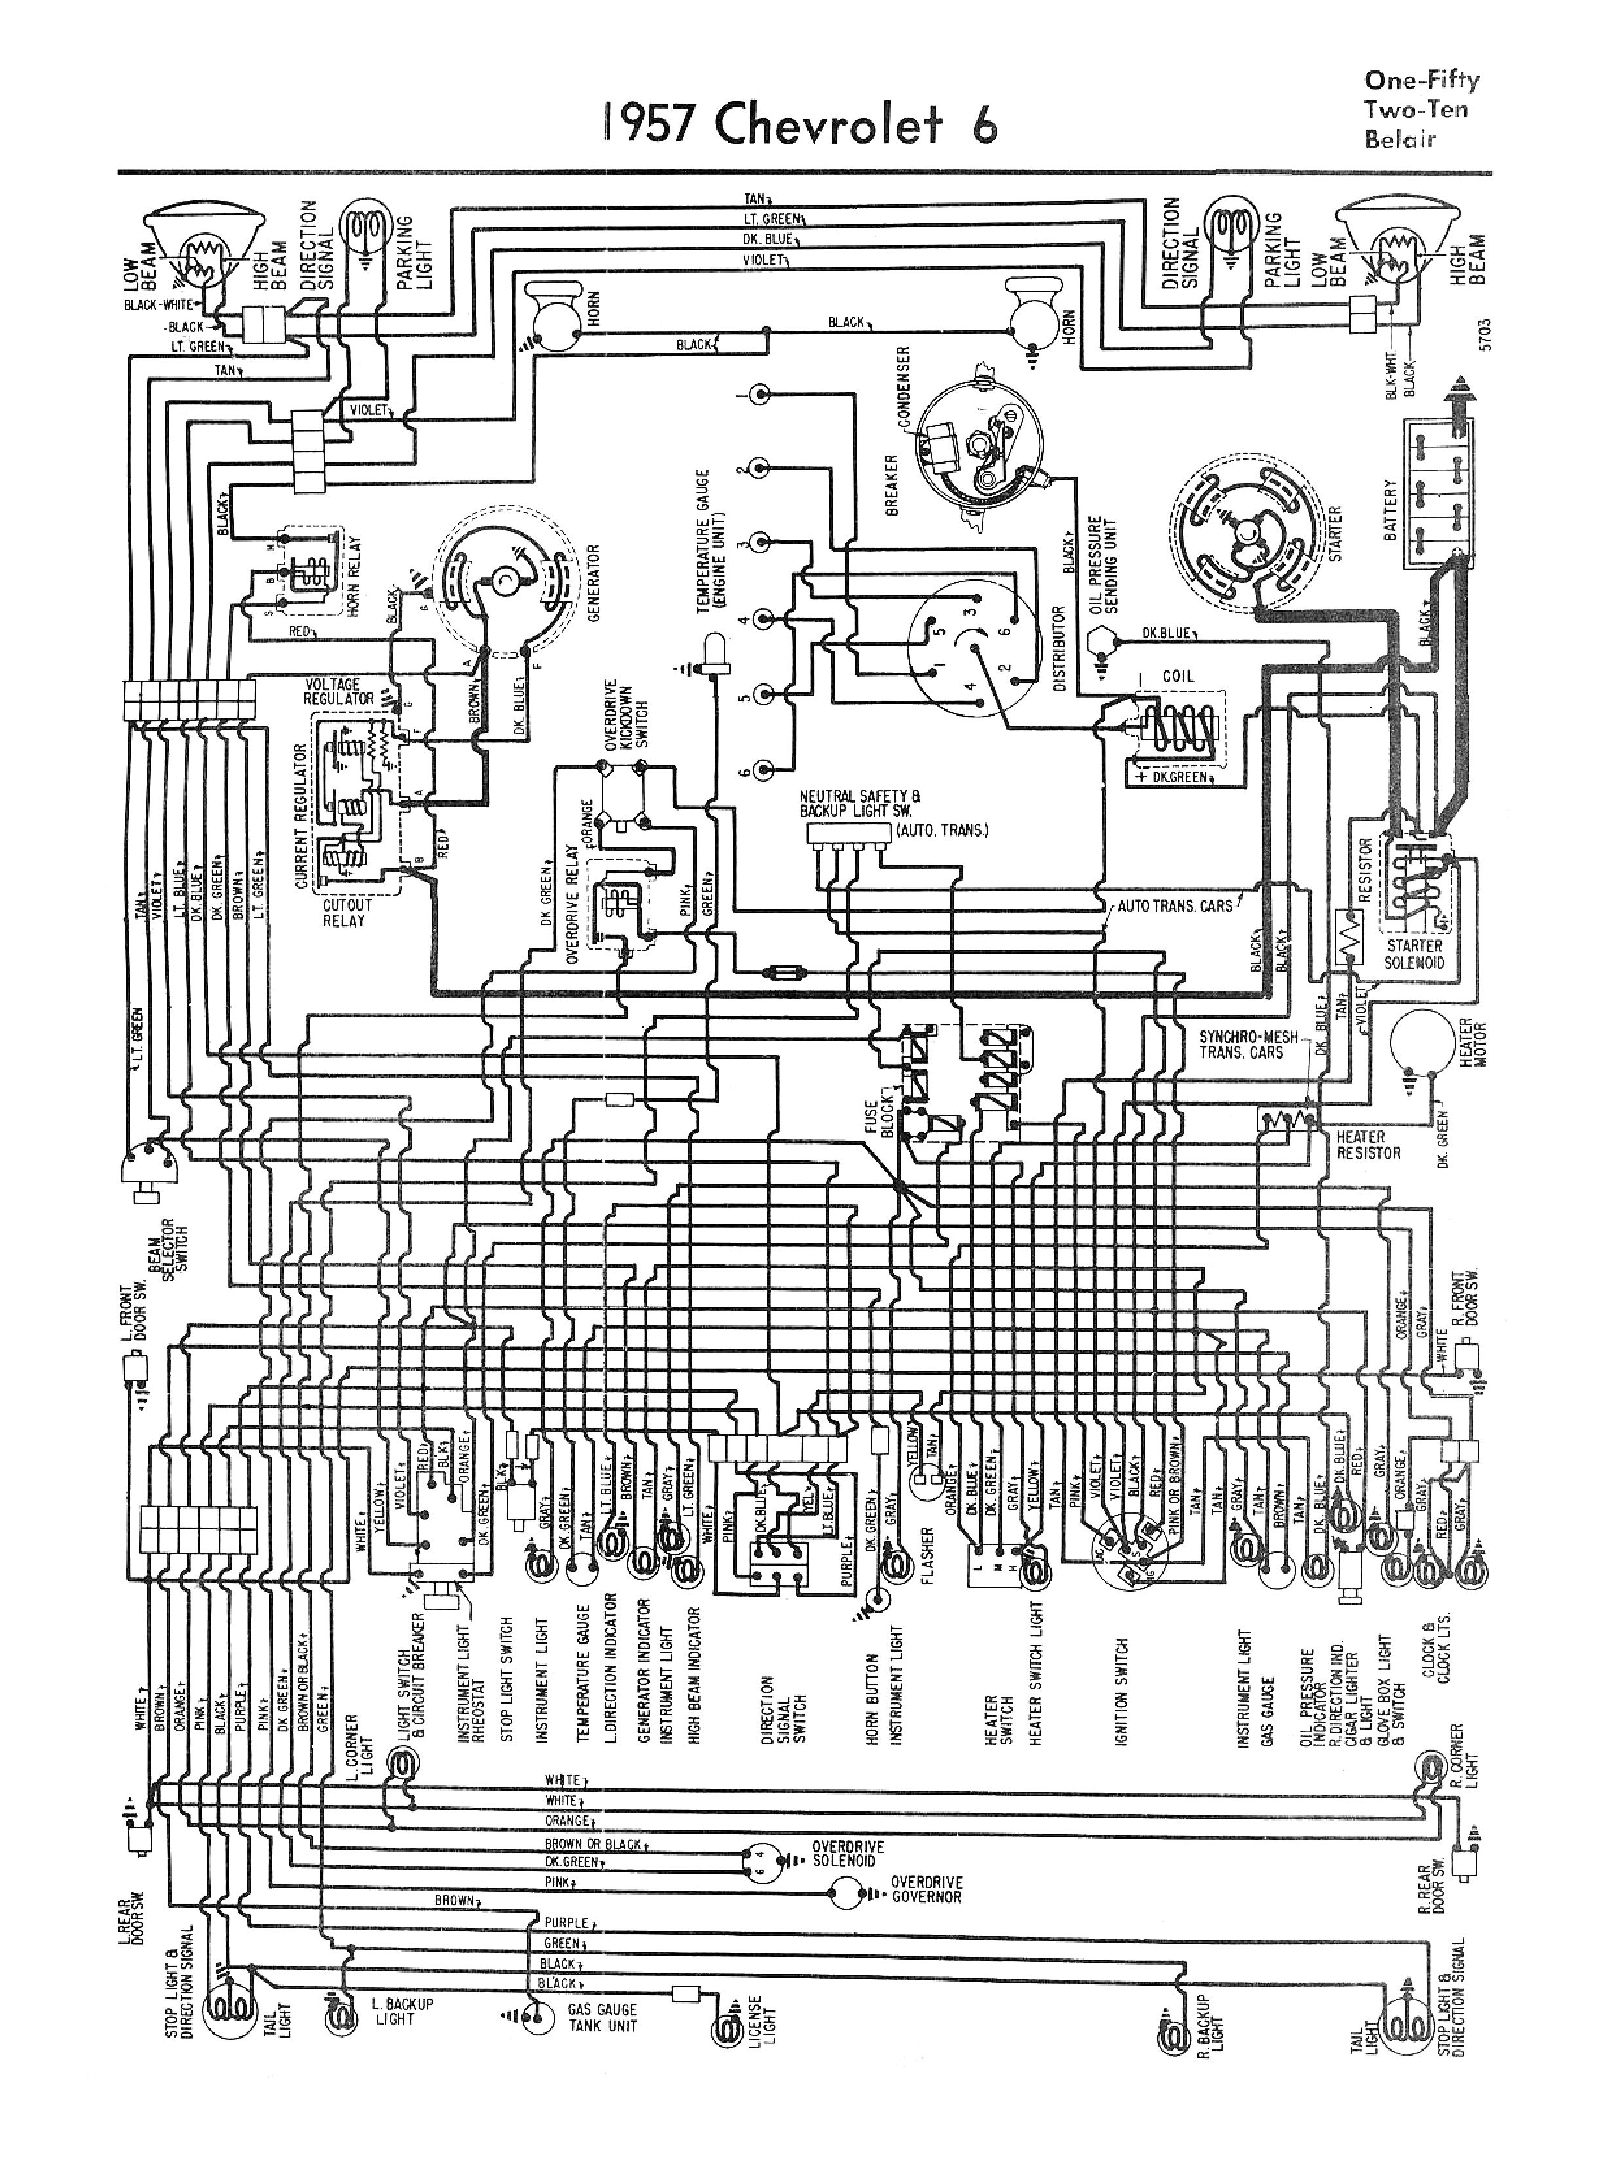 chevy wiring diagrams rh chevy oldcarmanualproject com C5 Corvette Wiring Harness Diagram C5 Corvette Wiring Harness Diagram